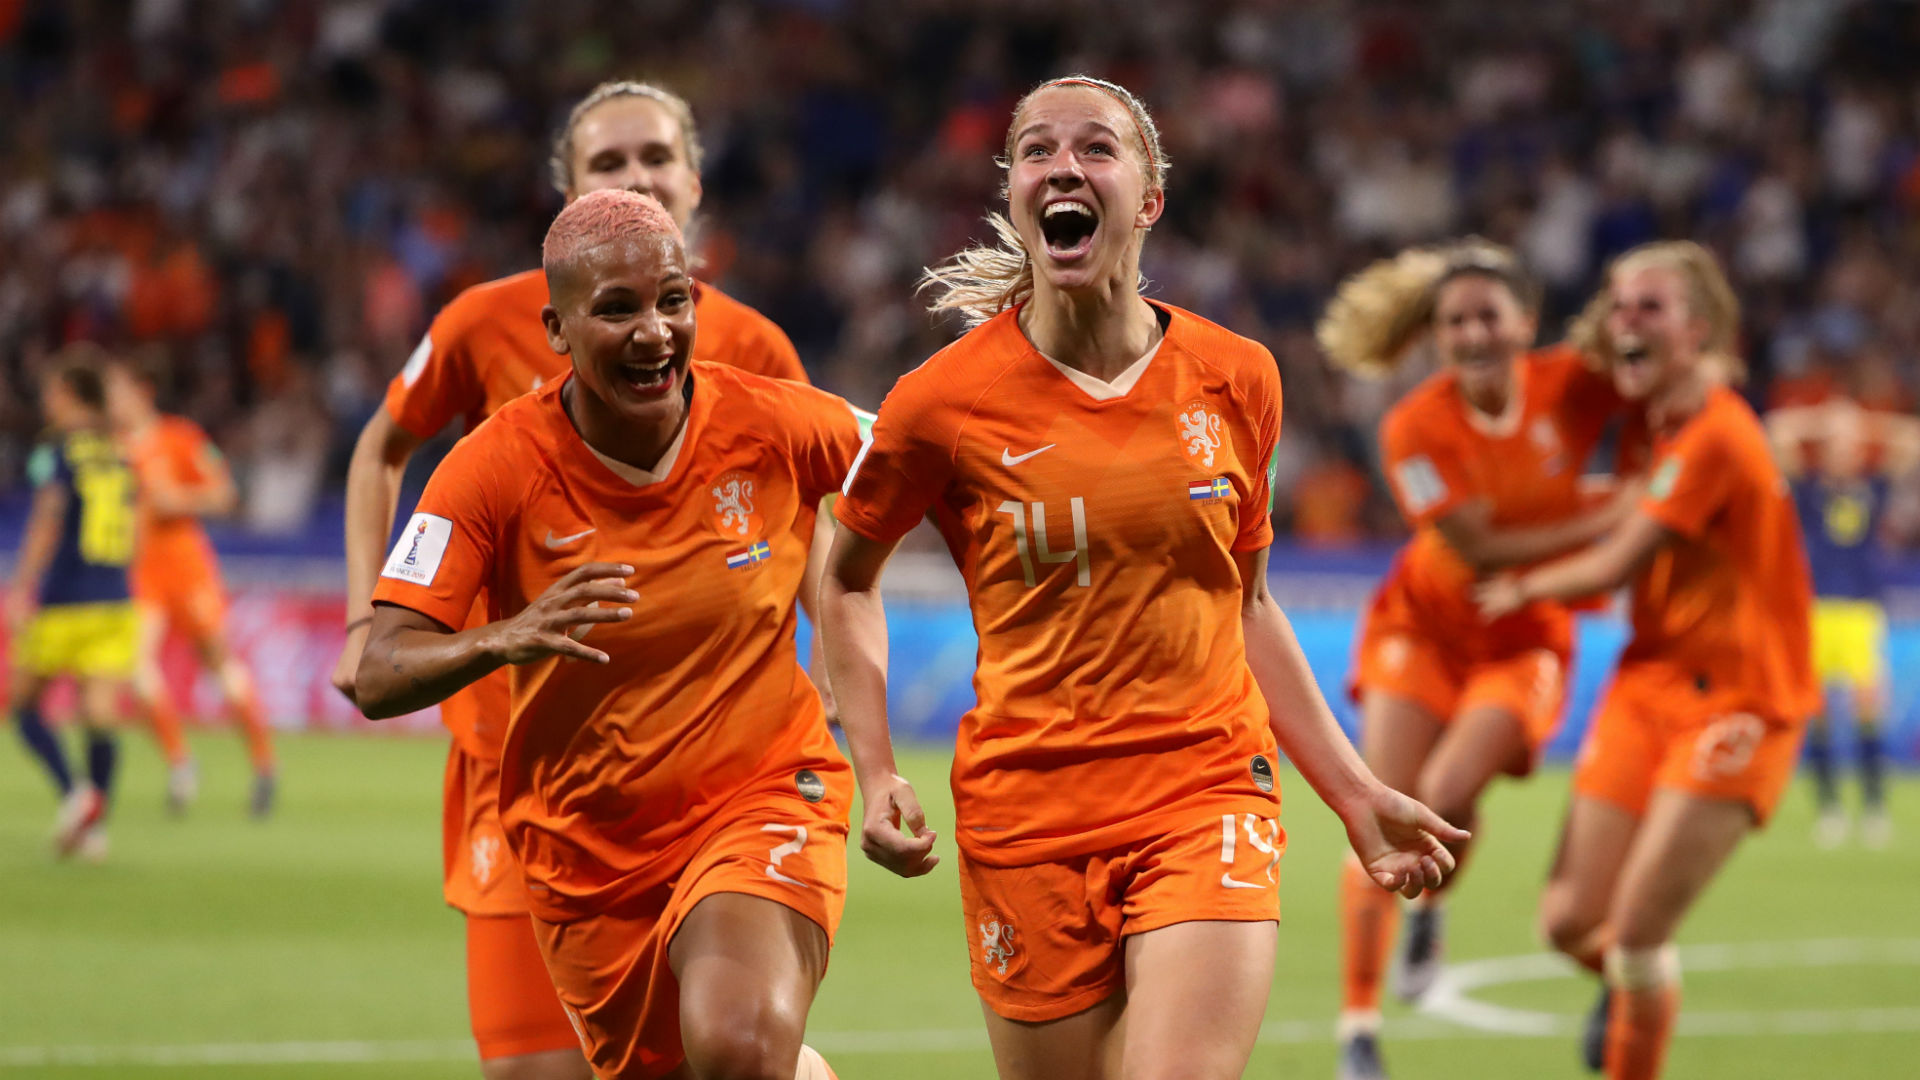 Jackie Groenen Netherlands Sweden Women's World Cup 2019